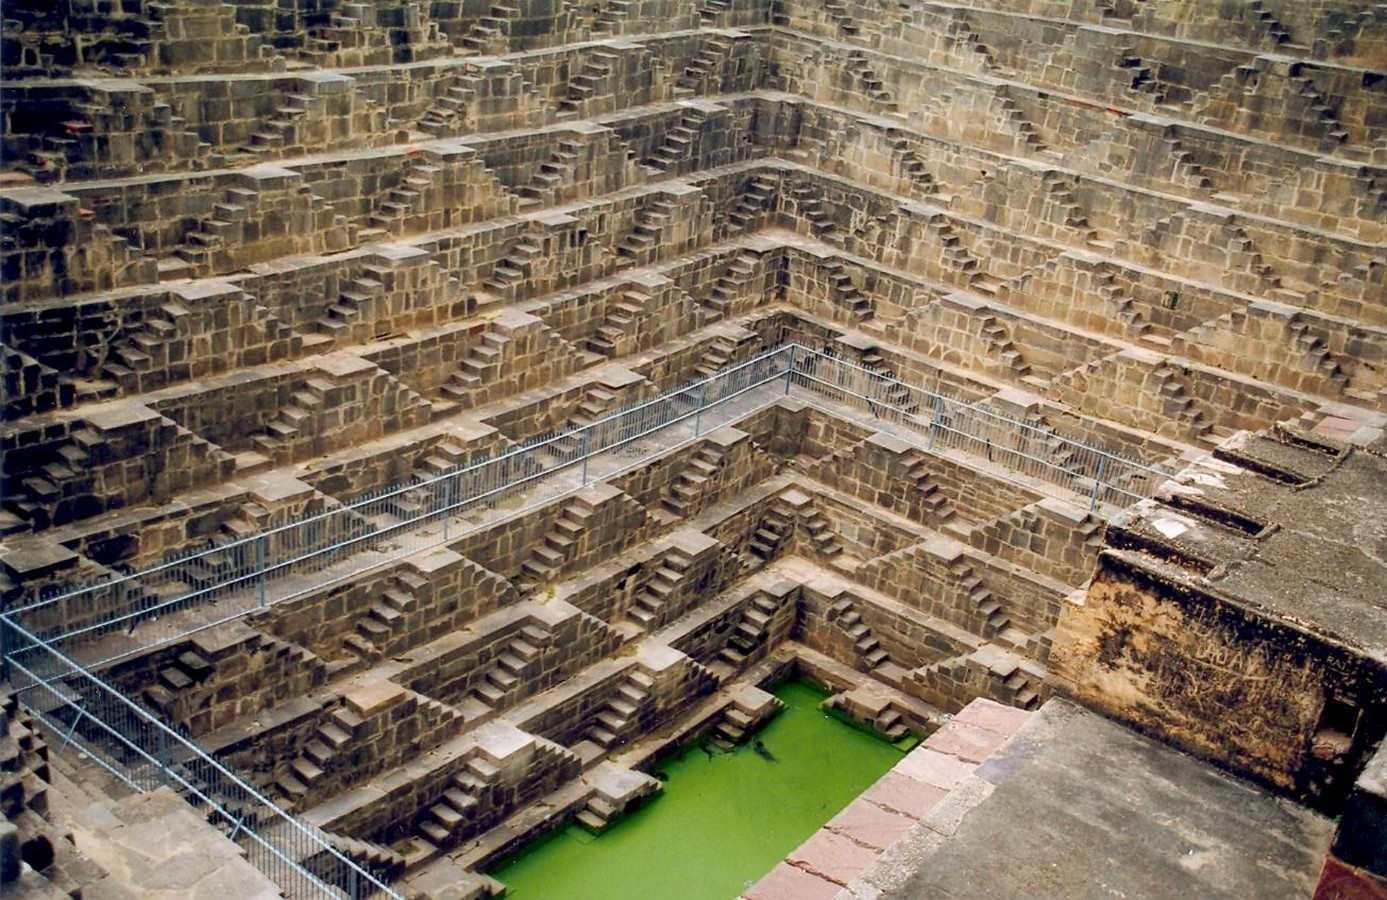 Sustainable practices in traditional ancient Indian architecture - Sheet5